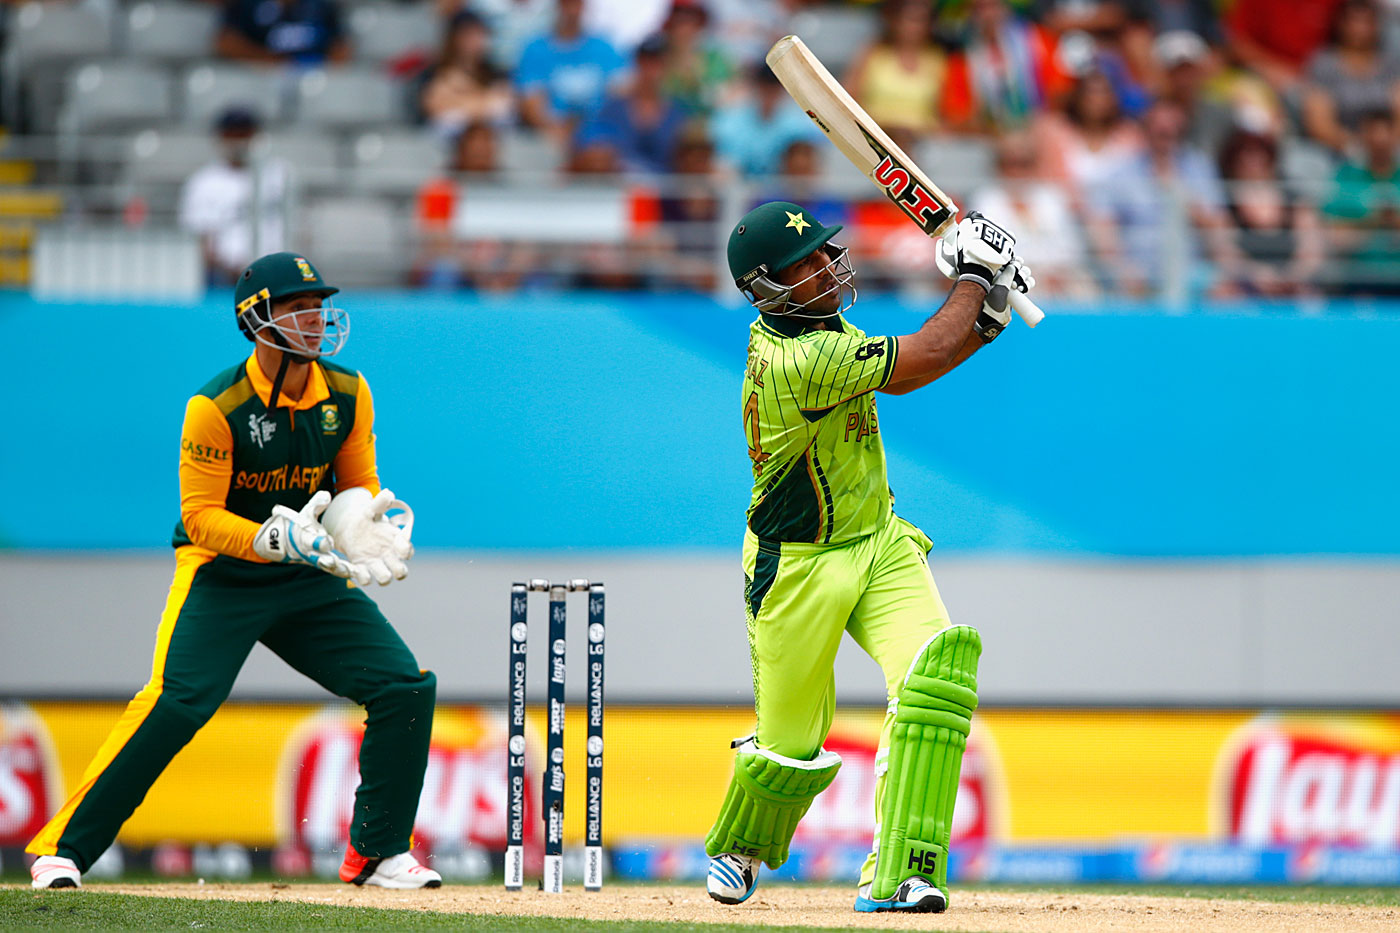 In the modern era, Sarfraz Ahmed's batting has most closely epitomised the Karachi way, as during his 49 against South Africa in Auckland in 2015